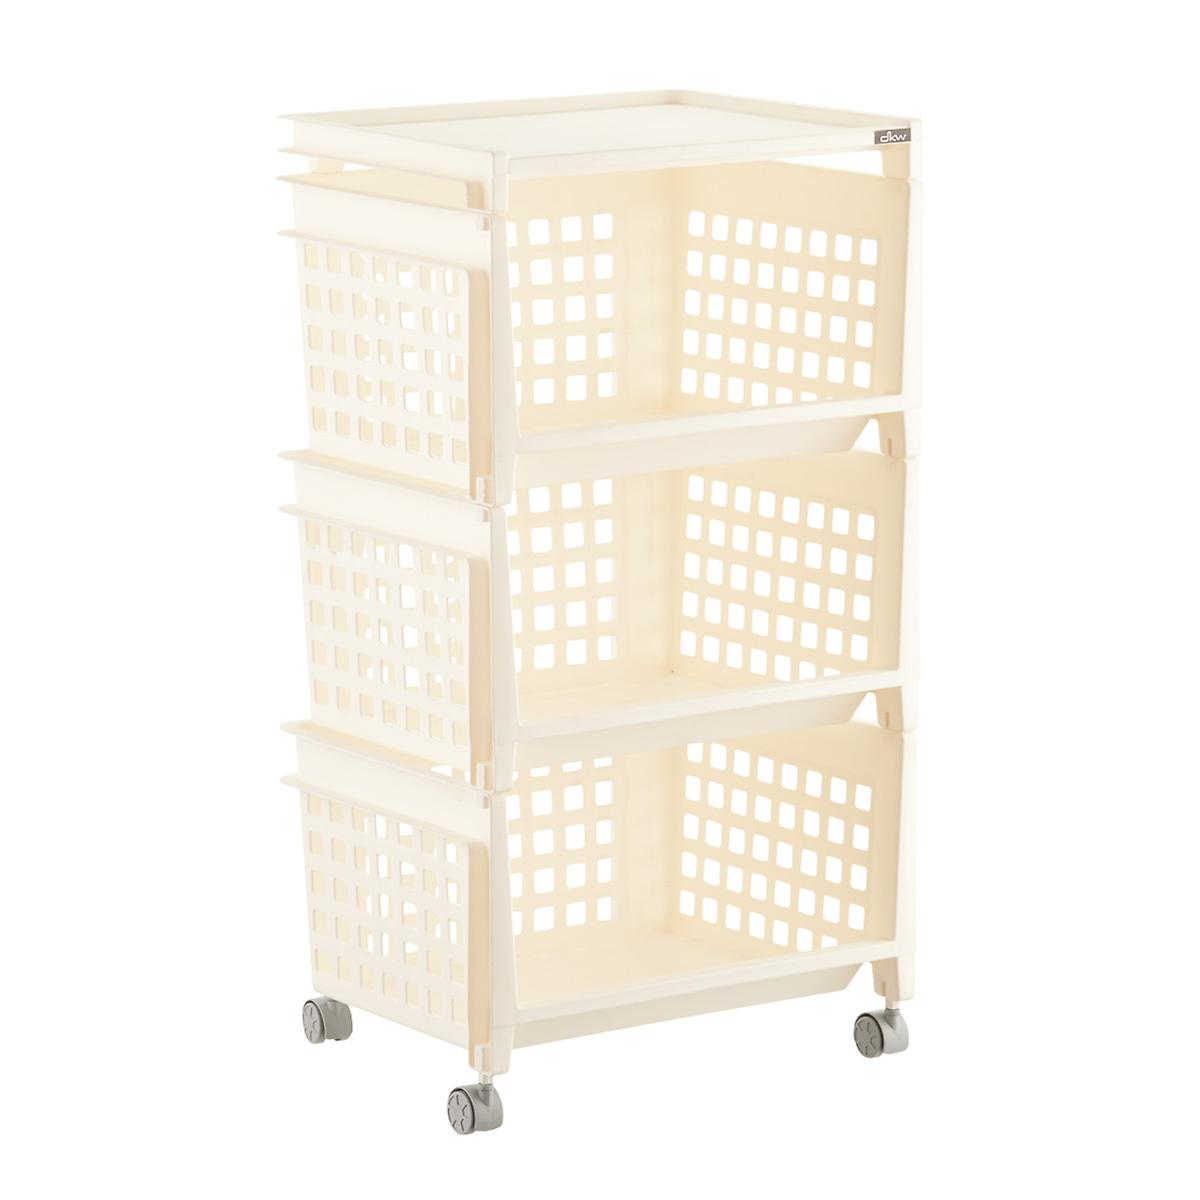 Cream 3-Tier Plastic Storage Bin with Wheels